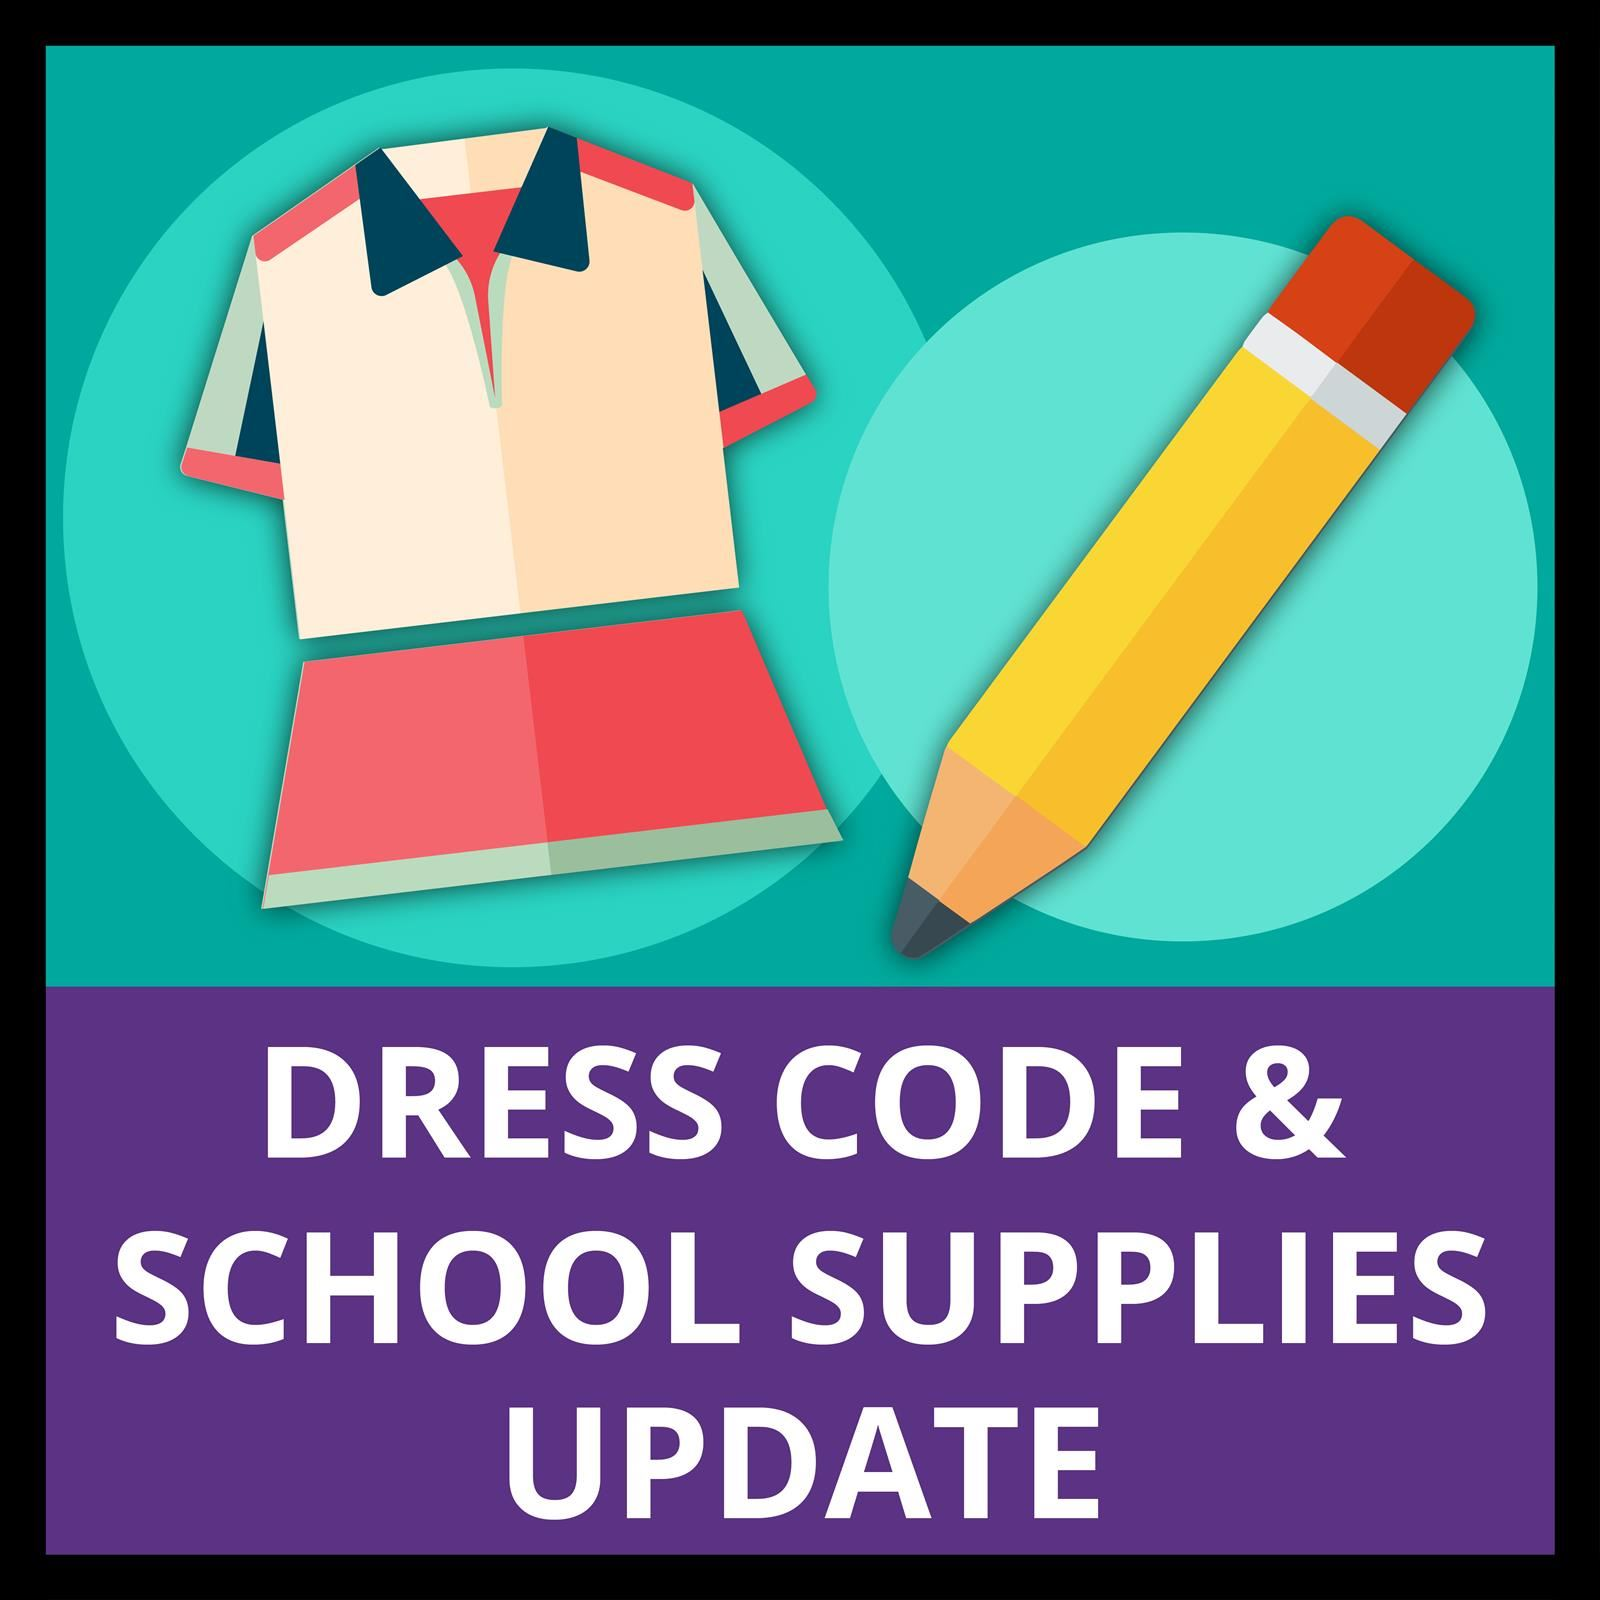 Explore PK-8 is pausing our uniform policy for the upcoming school year as we focus on safely reopen